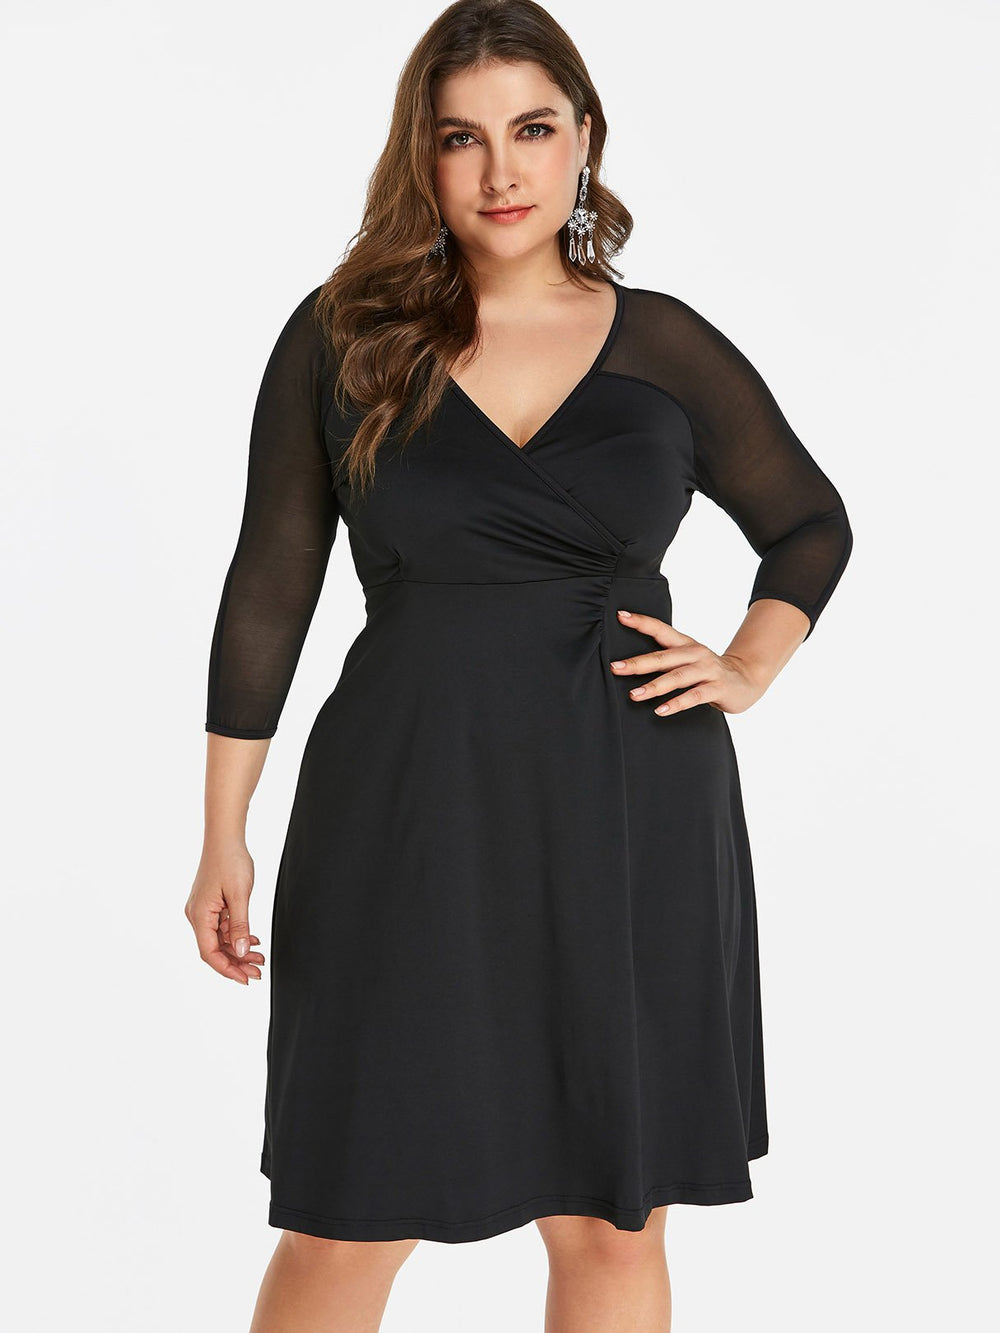 V-Neck Plain Wrap 3/4 Sleeve Black Plus Size Dress